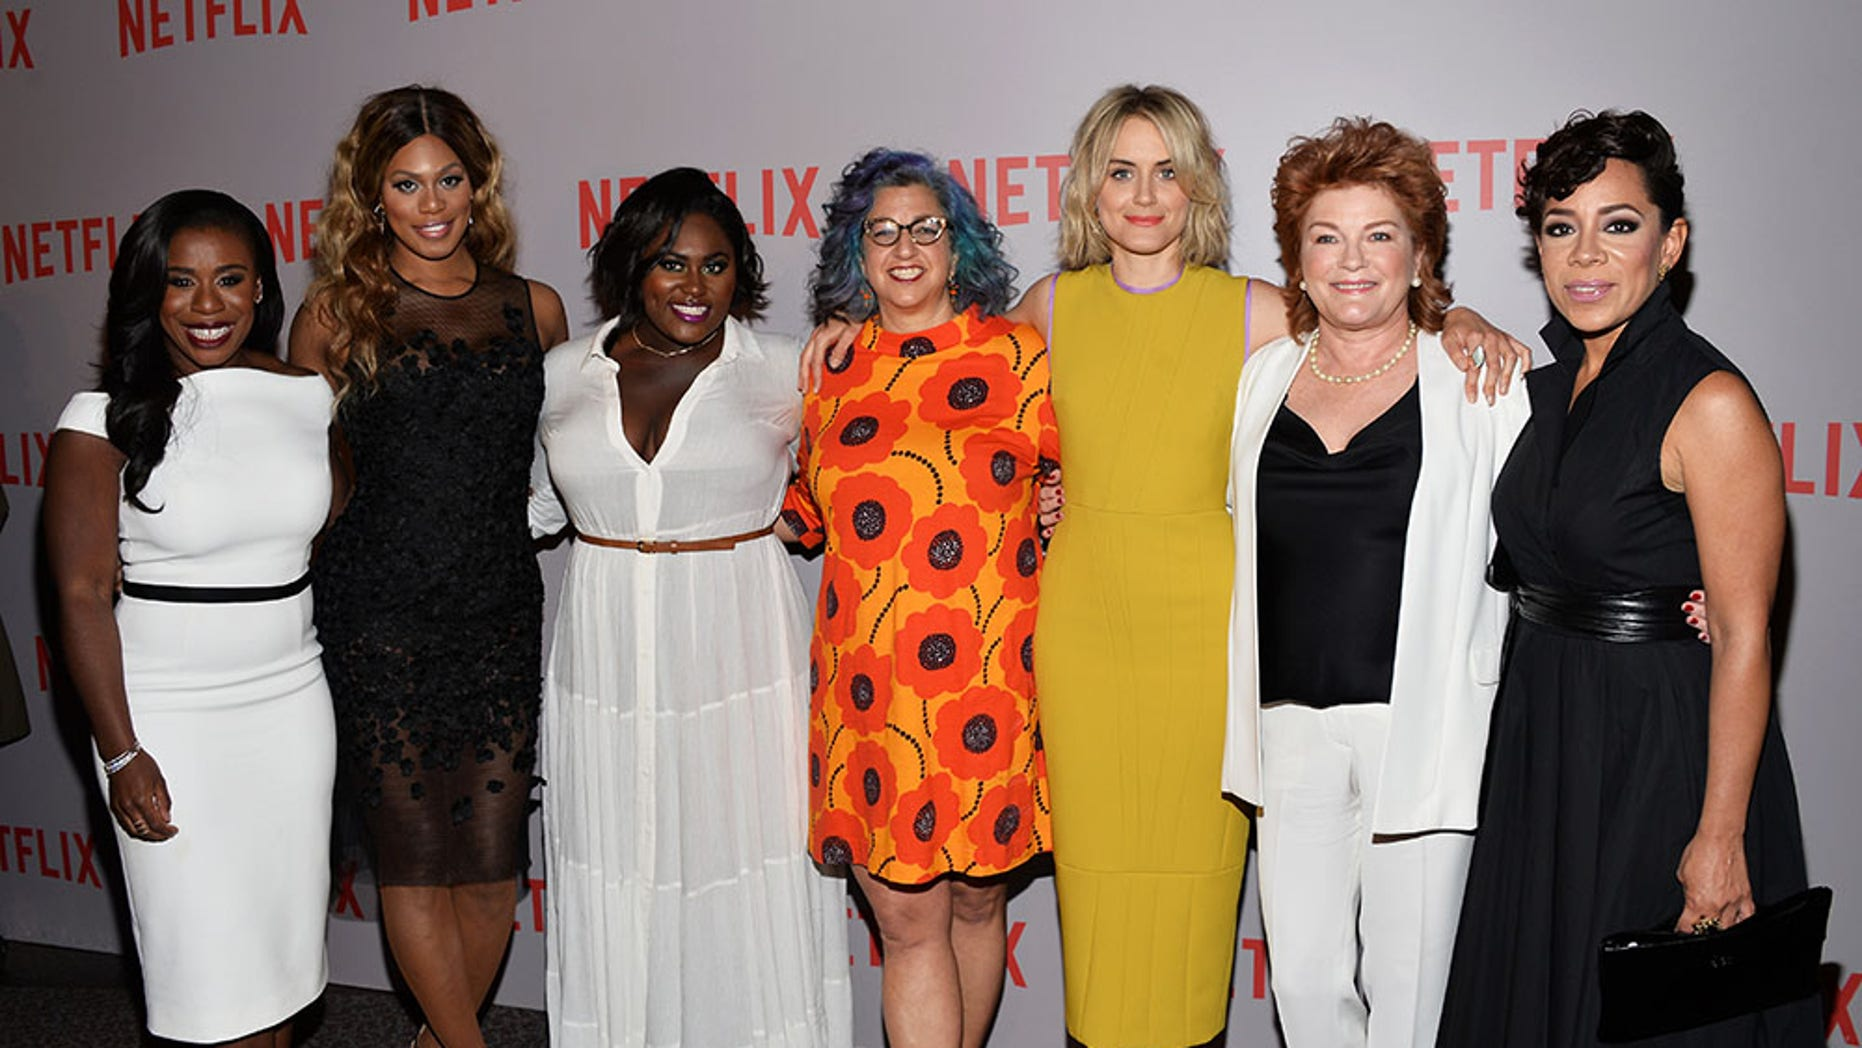 "(From left) Actresses Uzo Aduba, Laverne Cox and Danielle Brooks, executive producer Jenji Kohan and actresses Taylor Schilling, Kate Mulgrew and Selenis Leyva arrive at the Netflix ""Orange Is The New Black"" For Your Consideration Screening and Q&A at the Director's Guild Of America on May 20, 2015 in Los Angeles, California."